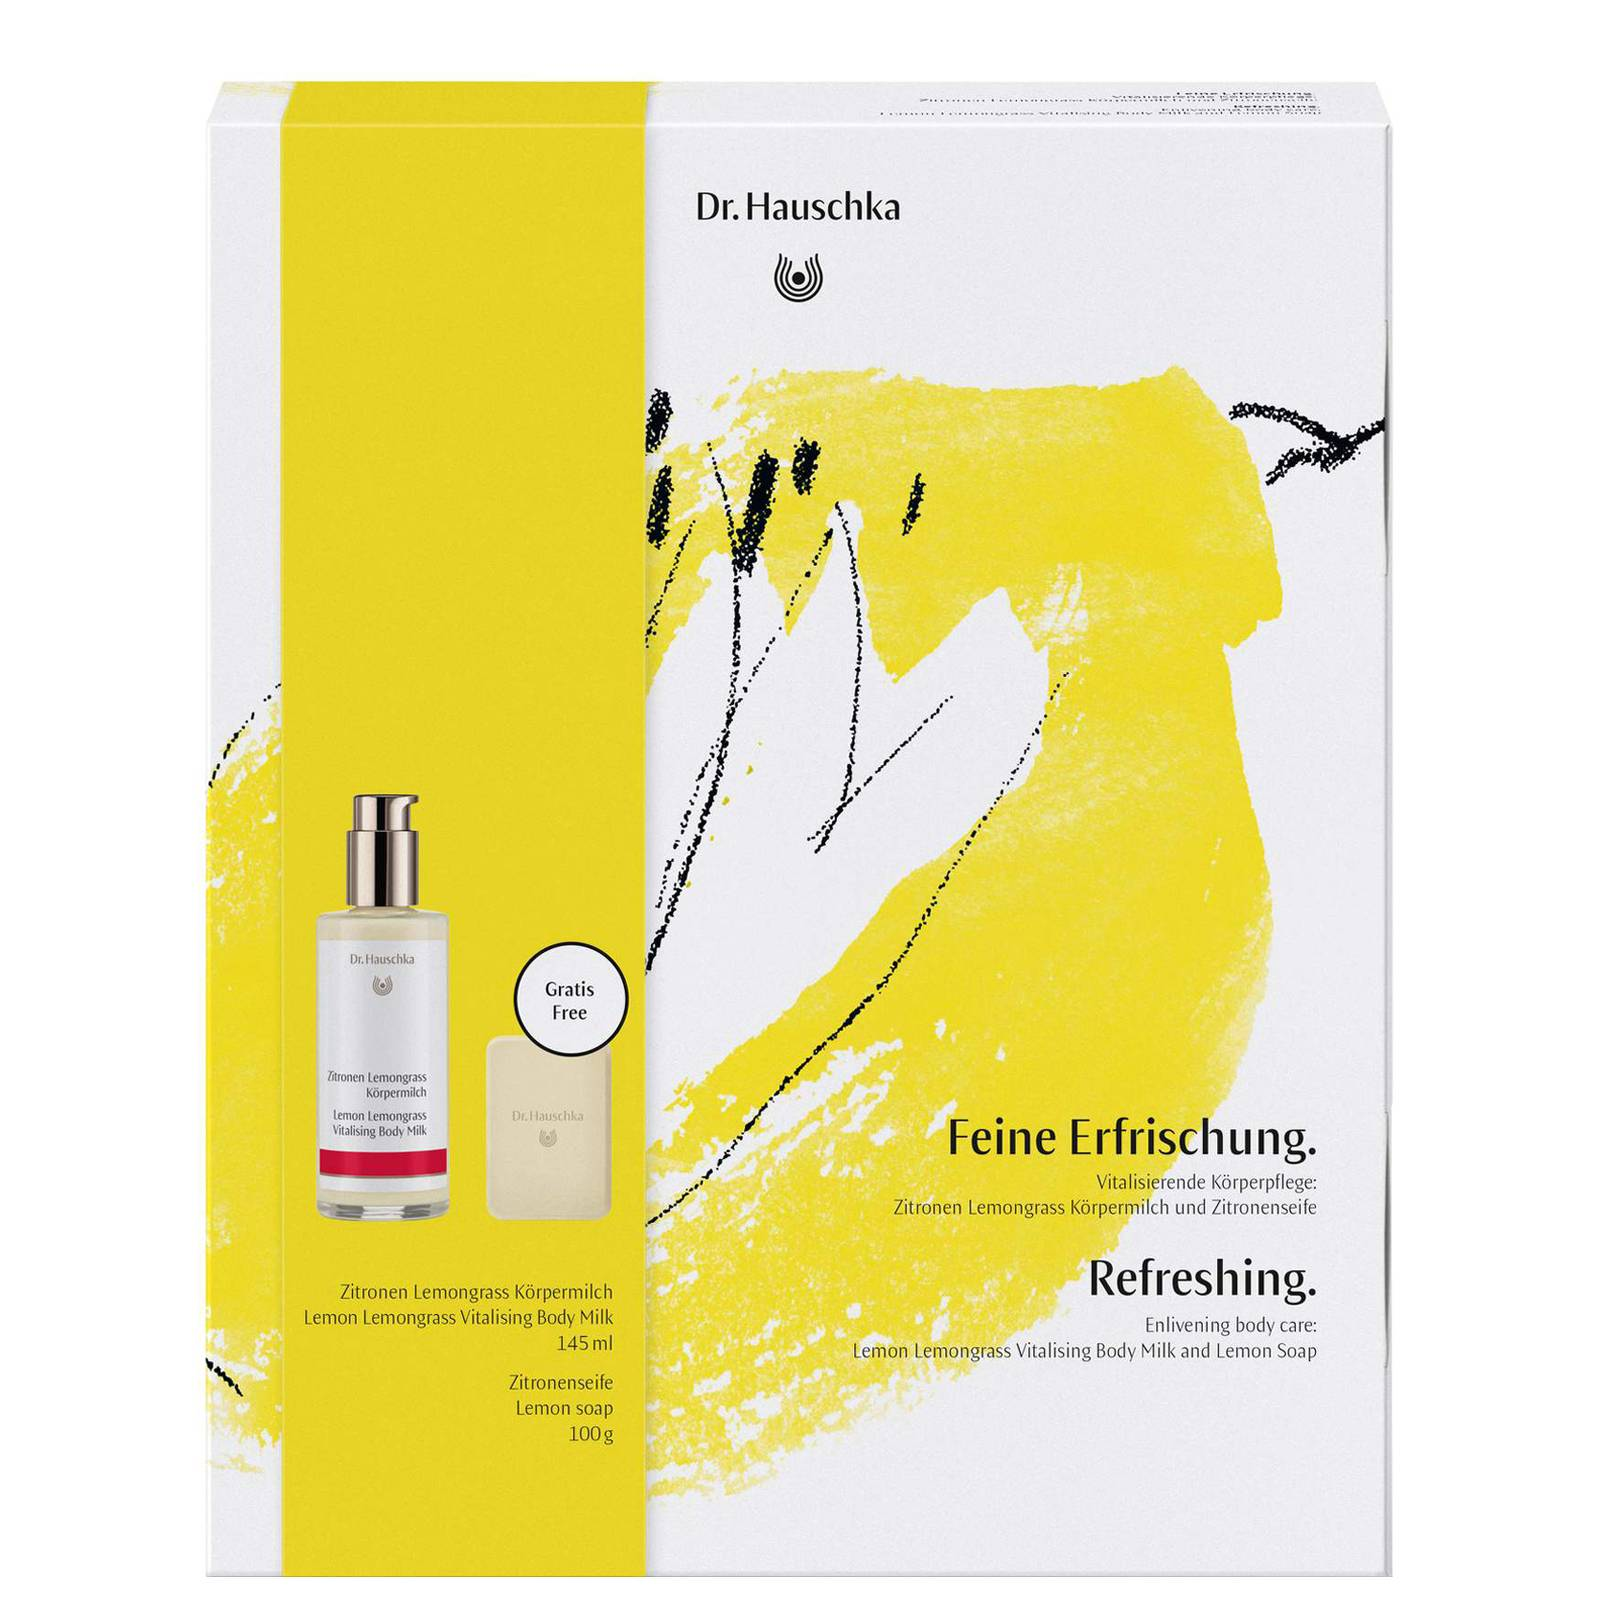 Dr. Hauschka - Gifts & Accessories Refreshing Gift Set for Women